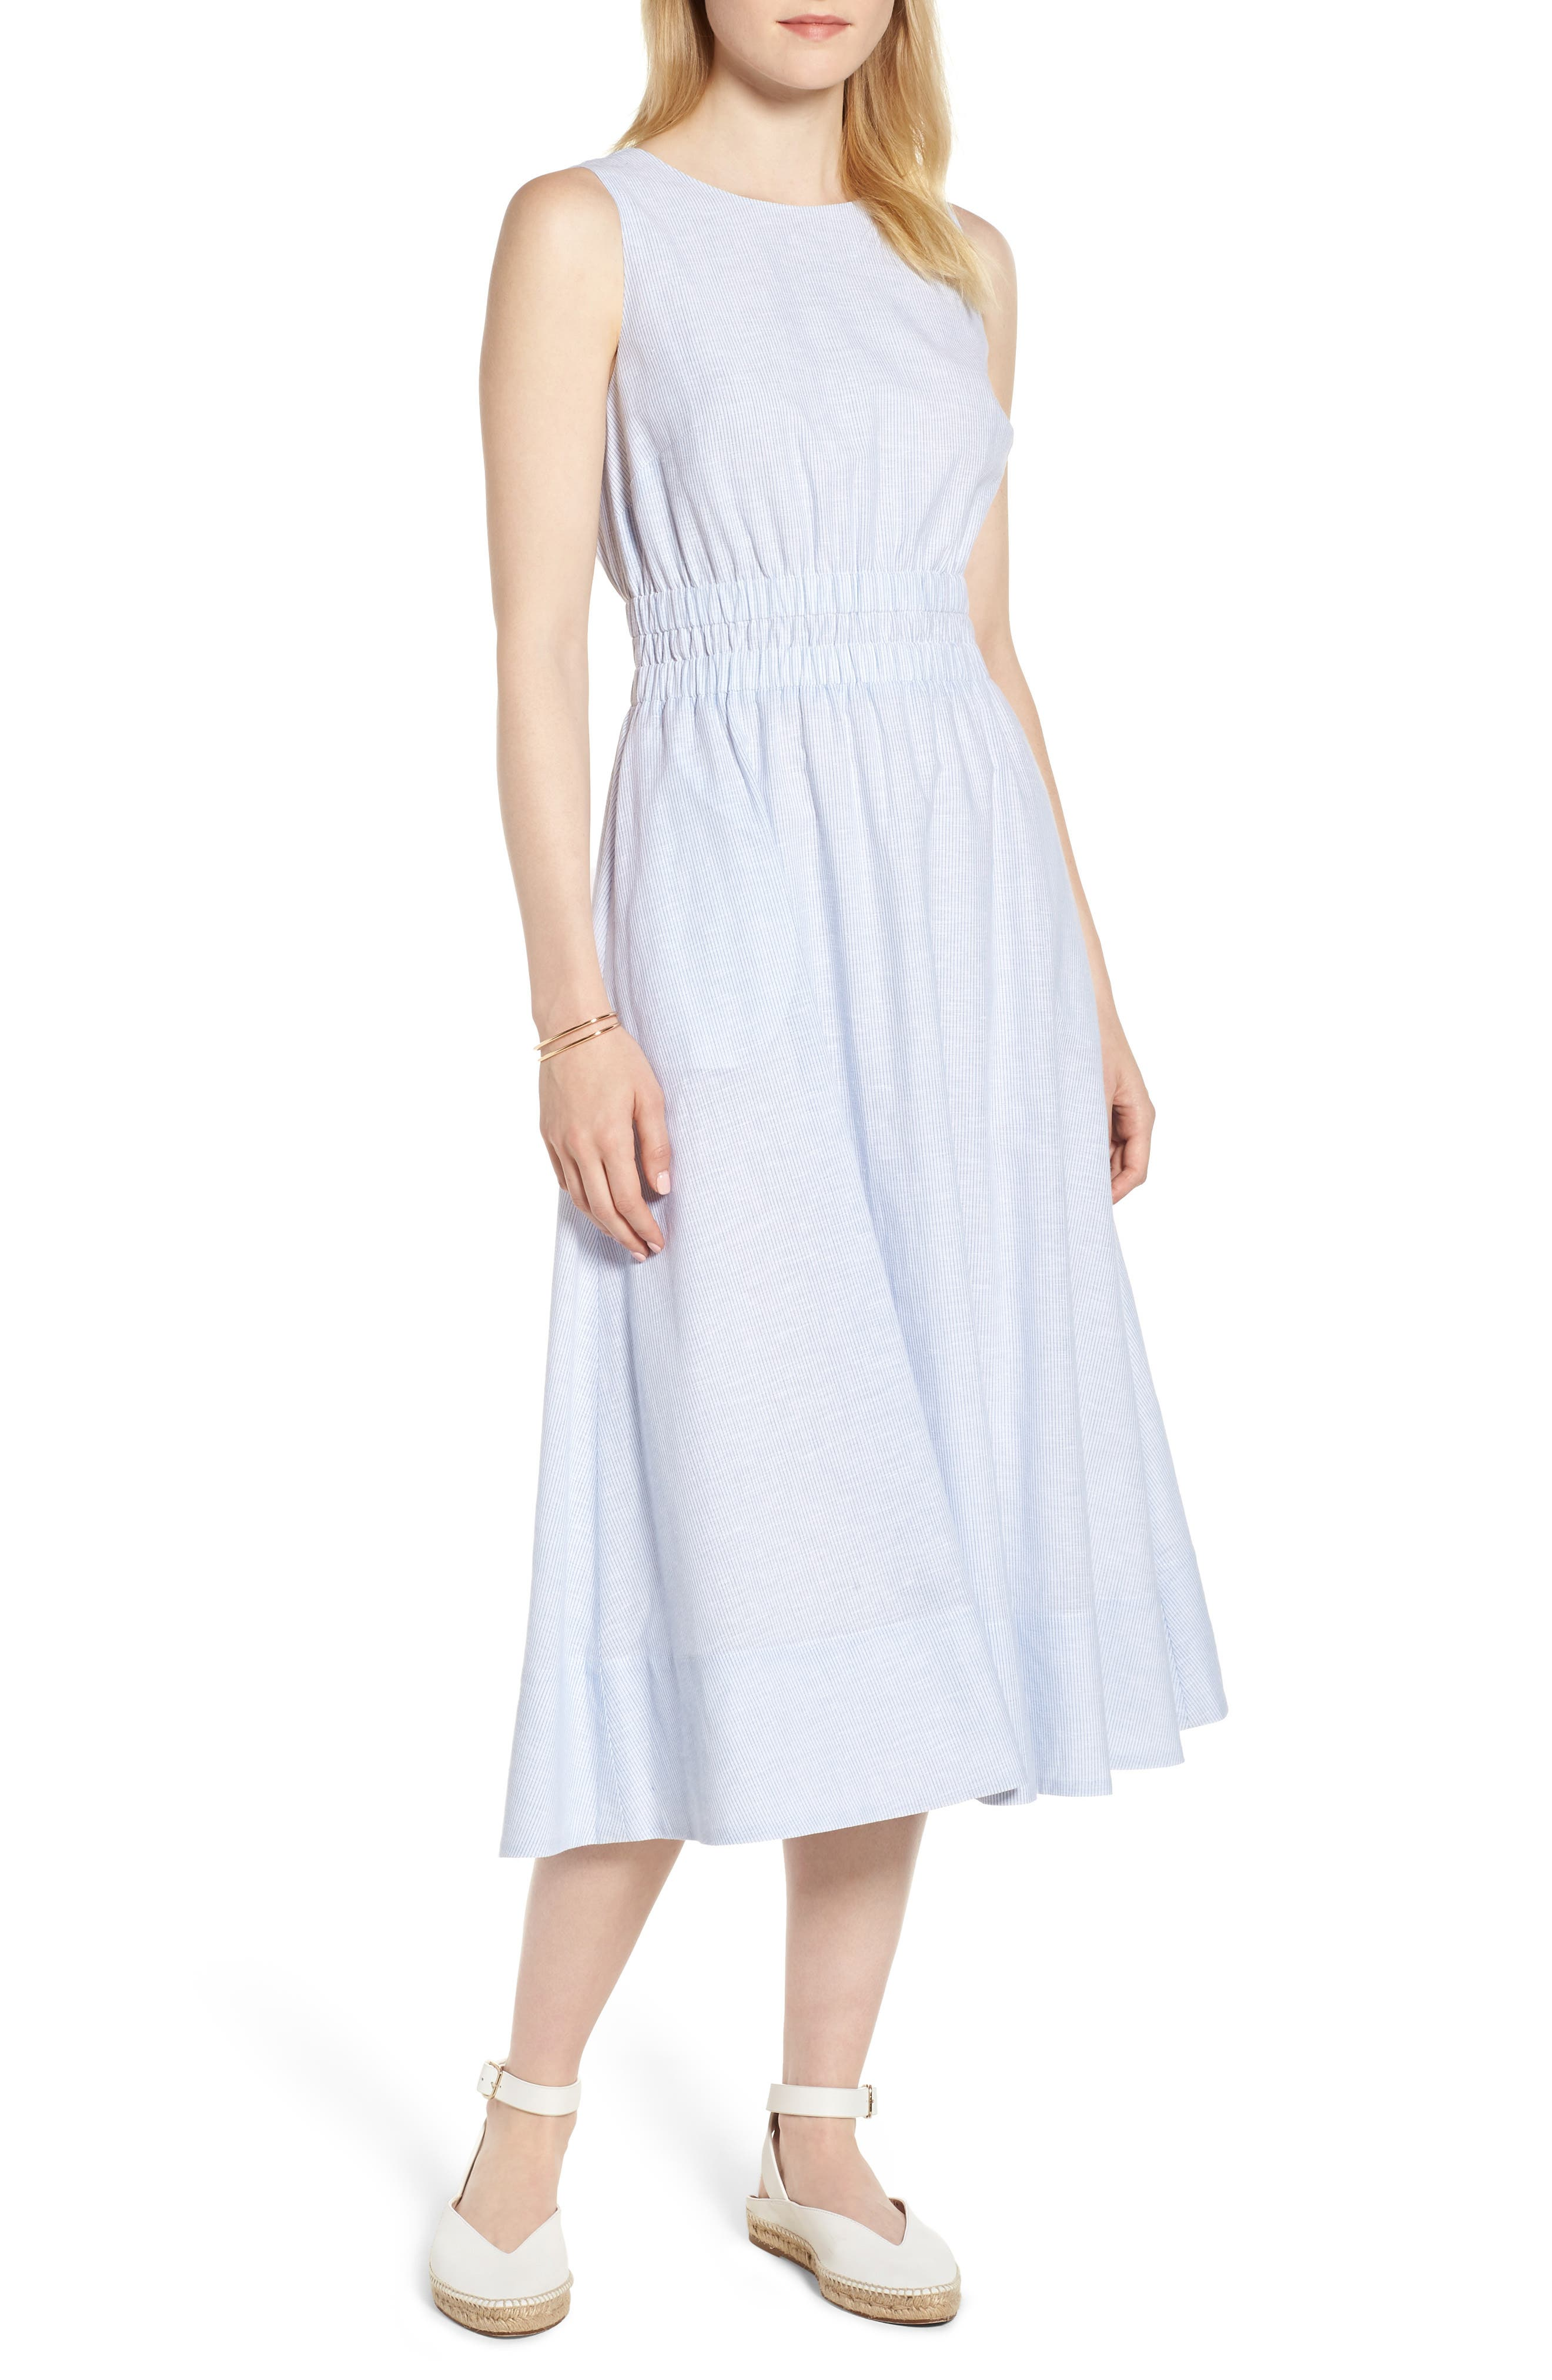 Smocked Waist Pinstripe Midi Dress,                         Main,                         color, White- Blue Mini Stripe